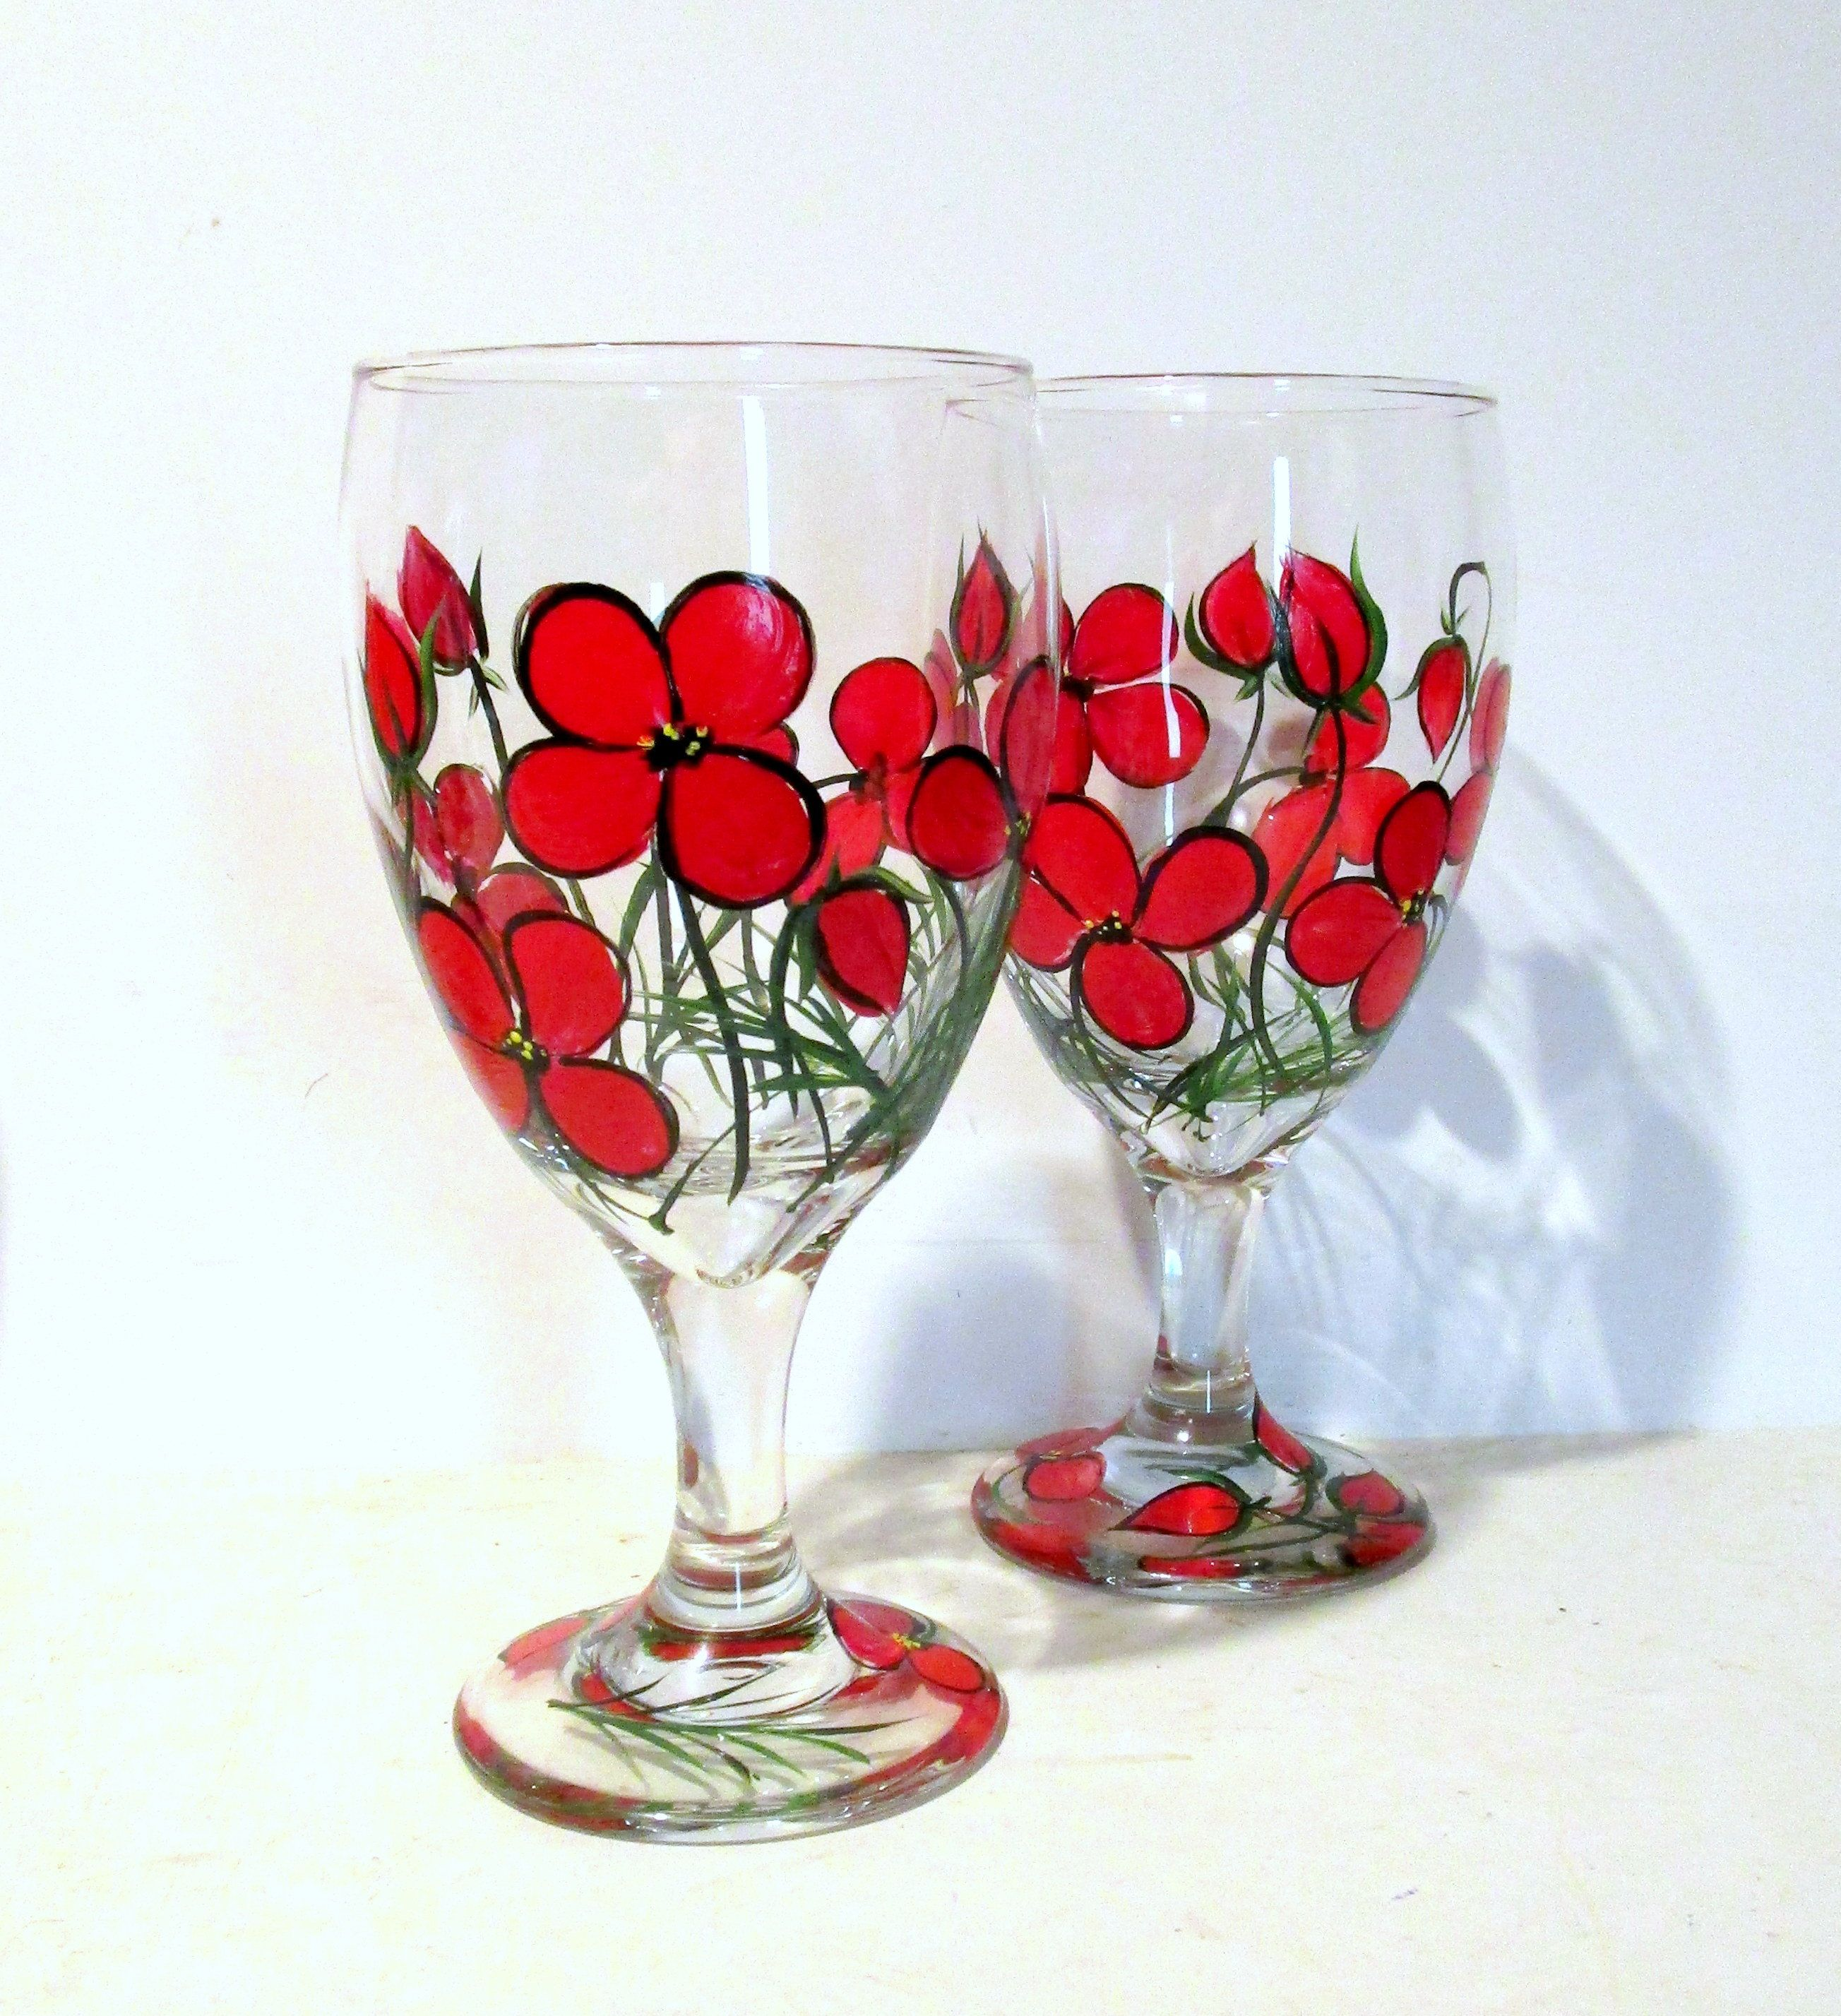 Whimsical Red Poppies Hand Painted Set Of 2 16 Oz Ice Tea Glasses Bridesmaids Gift Bridal Shower Red Flowers Wedding Party Gift In 2020 Red Wedding Flowers Gifts For Wedding Party Red Poppies